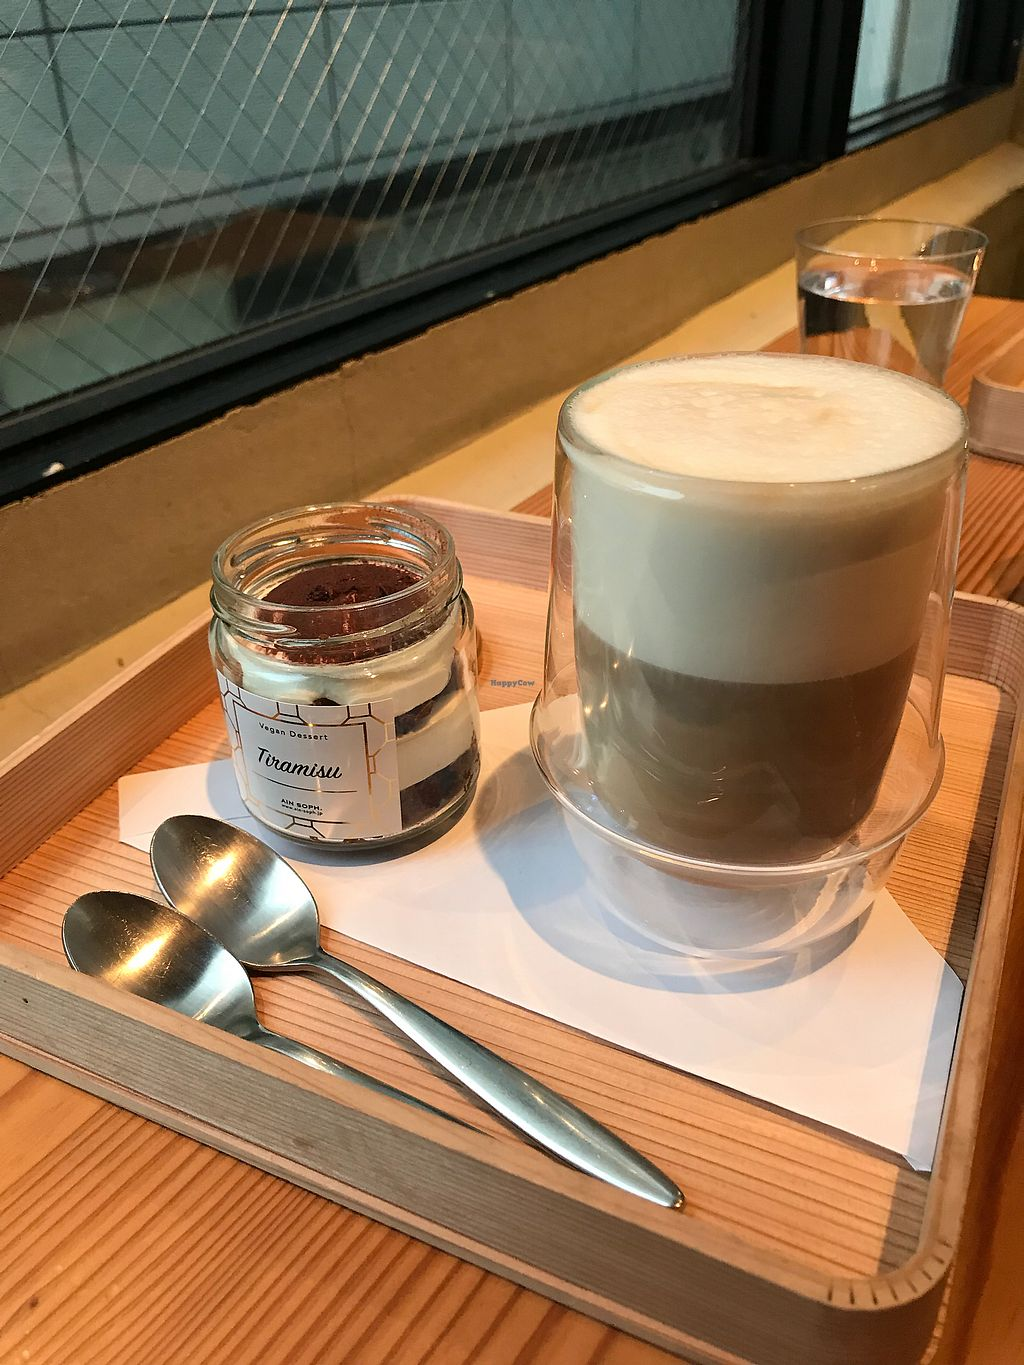 """Photo of Ain Soph.Ginza  by <a href=""""/members/profile/vegetariangirl"""">vegetariangirl</a> <br/>Tea time tiramisu and soy latte <br/> February 10, 2018  - <a href='/contact/abuse/image/23681/357202'>Report</a>"""